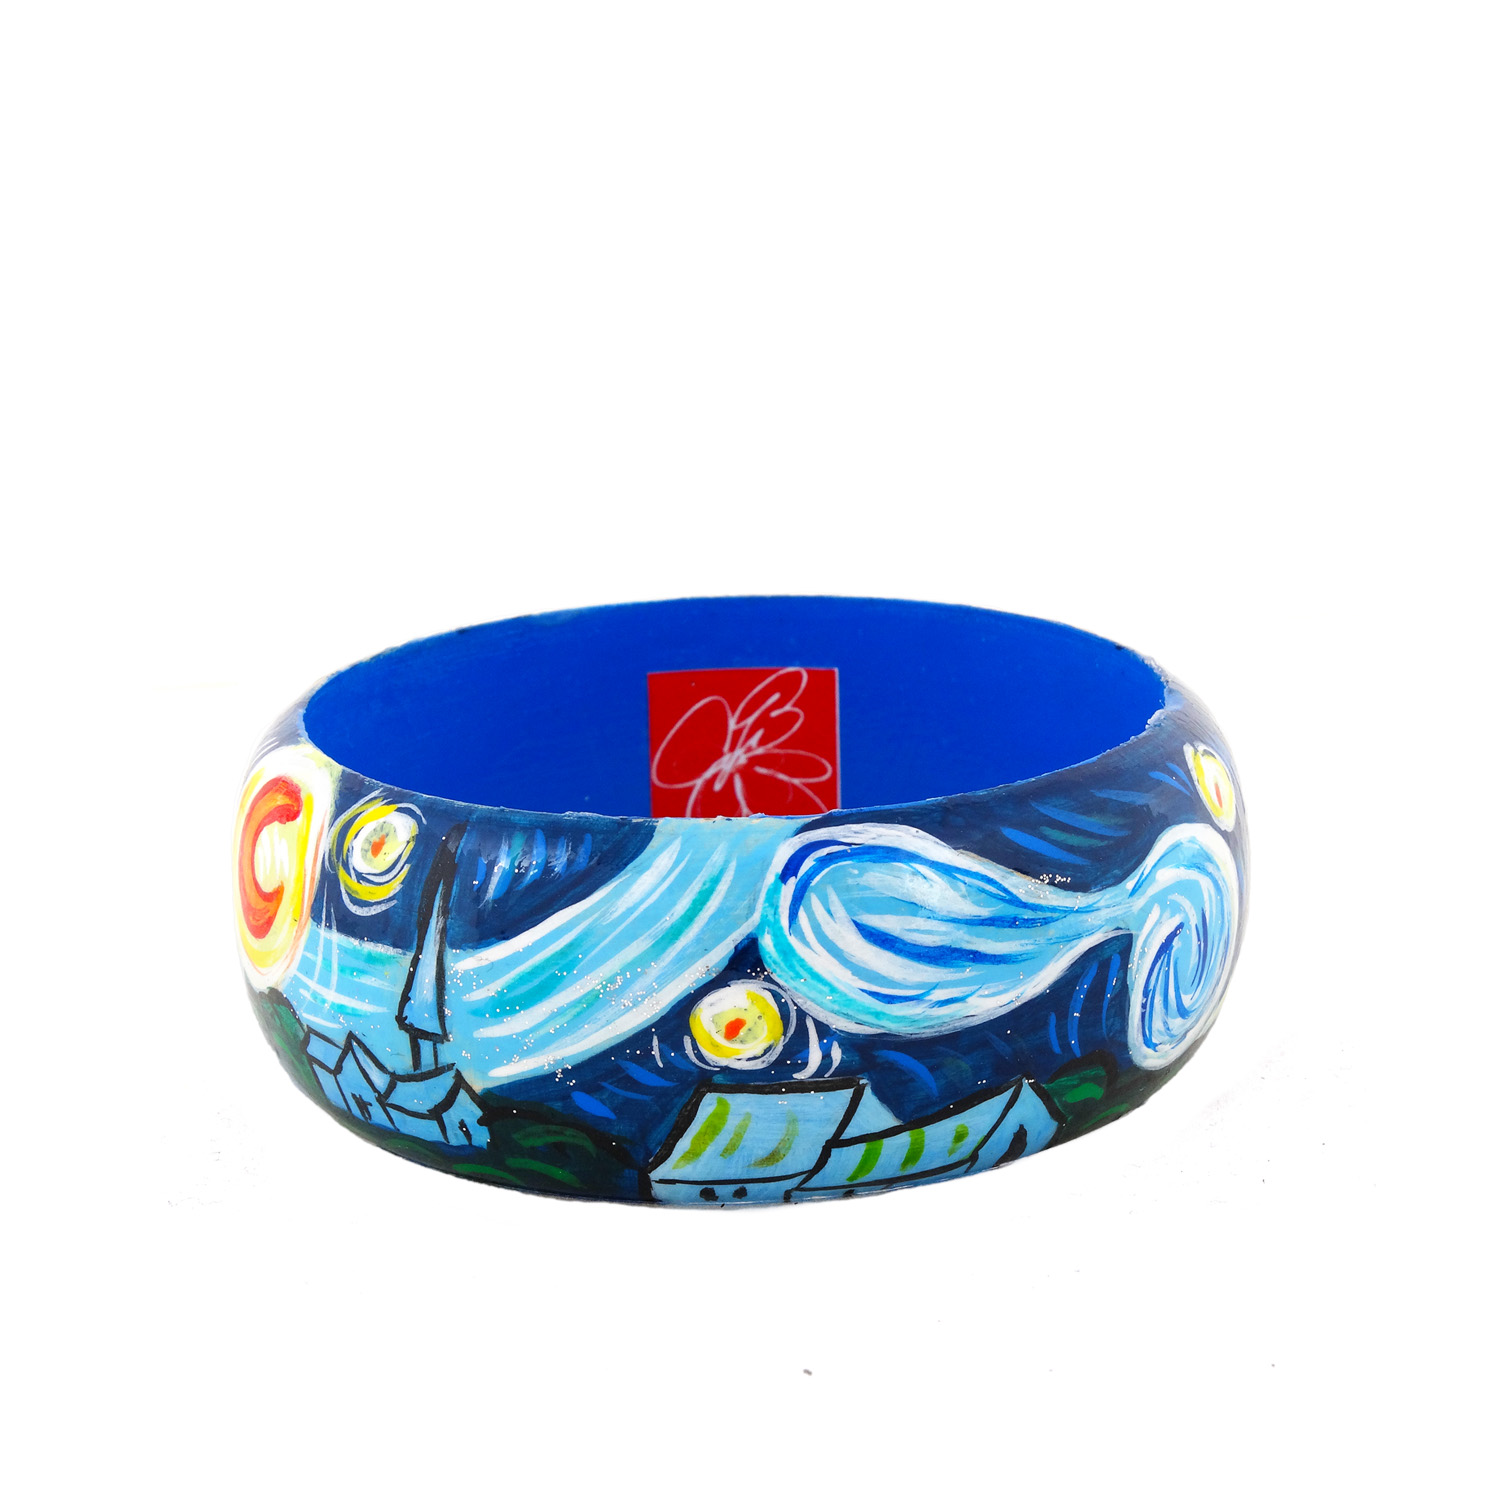 Hand-painted bangle - The Starry Night by Van Gogh